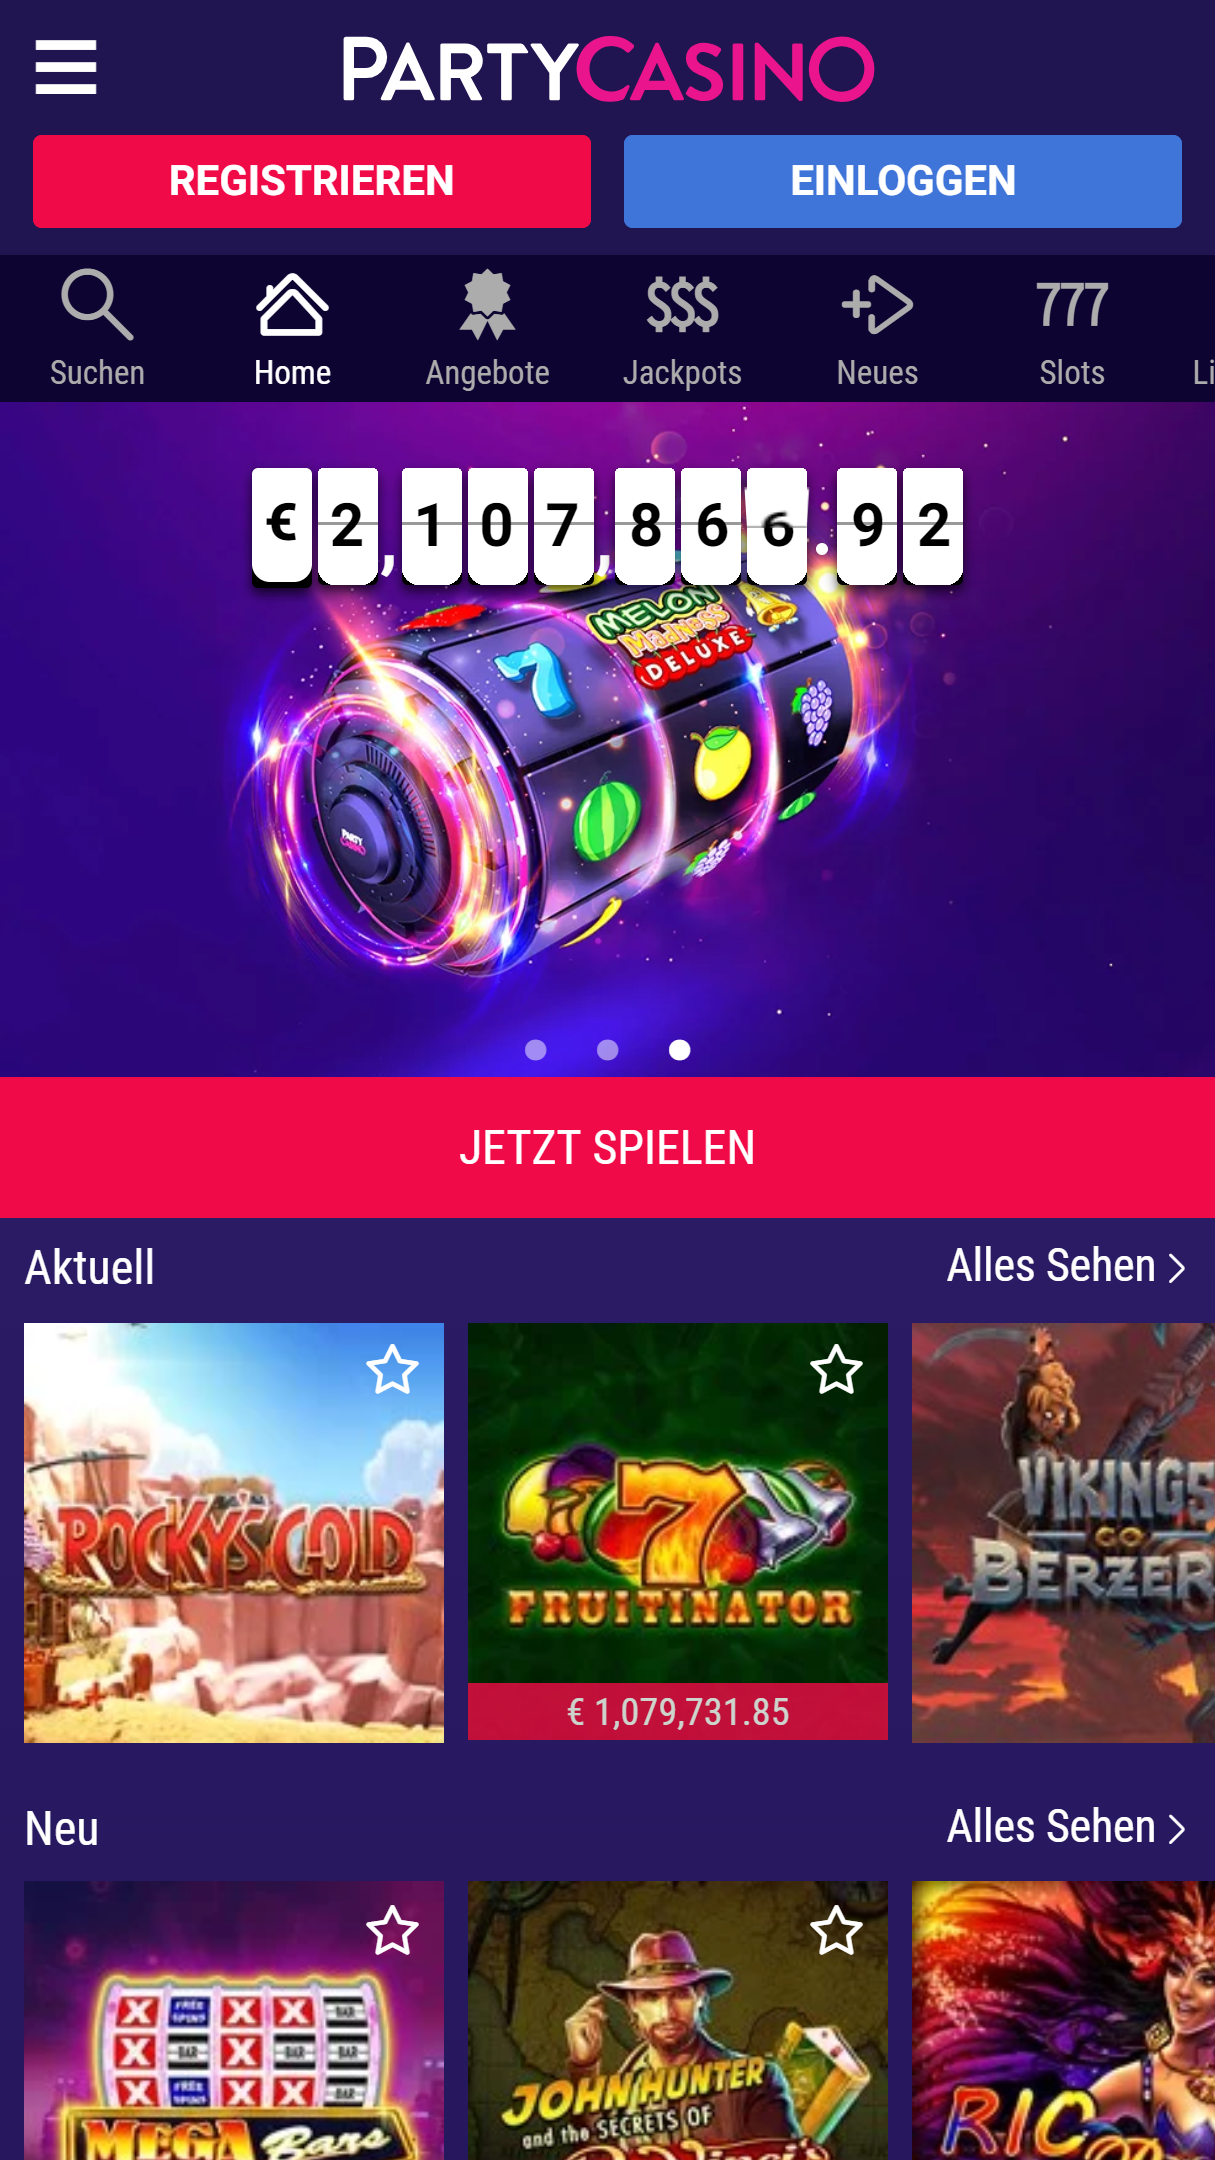 100% do 200 in 50 se vrti na različnih igrah v Party Casinoju